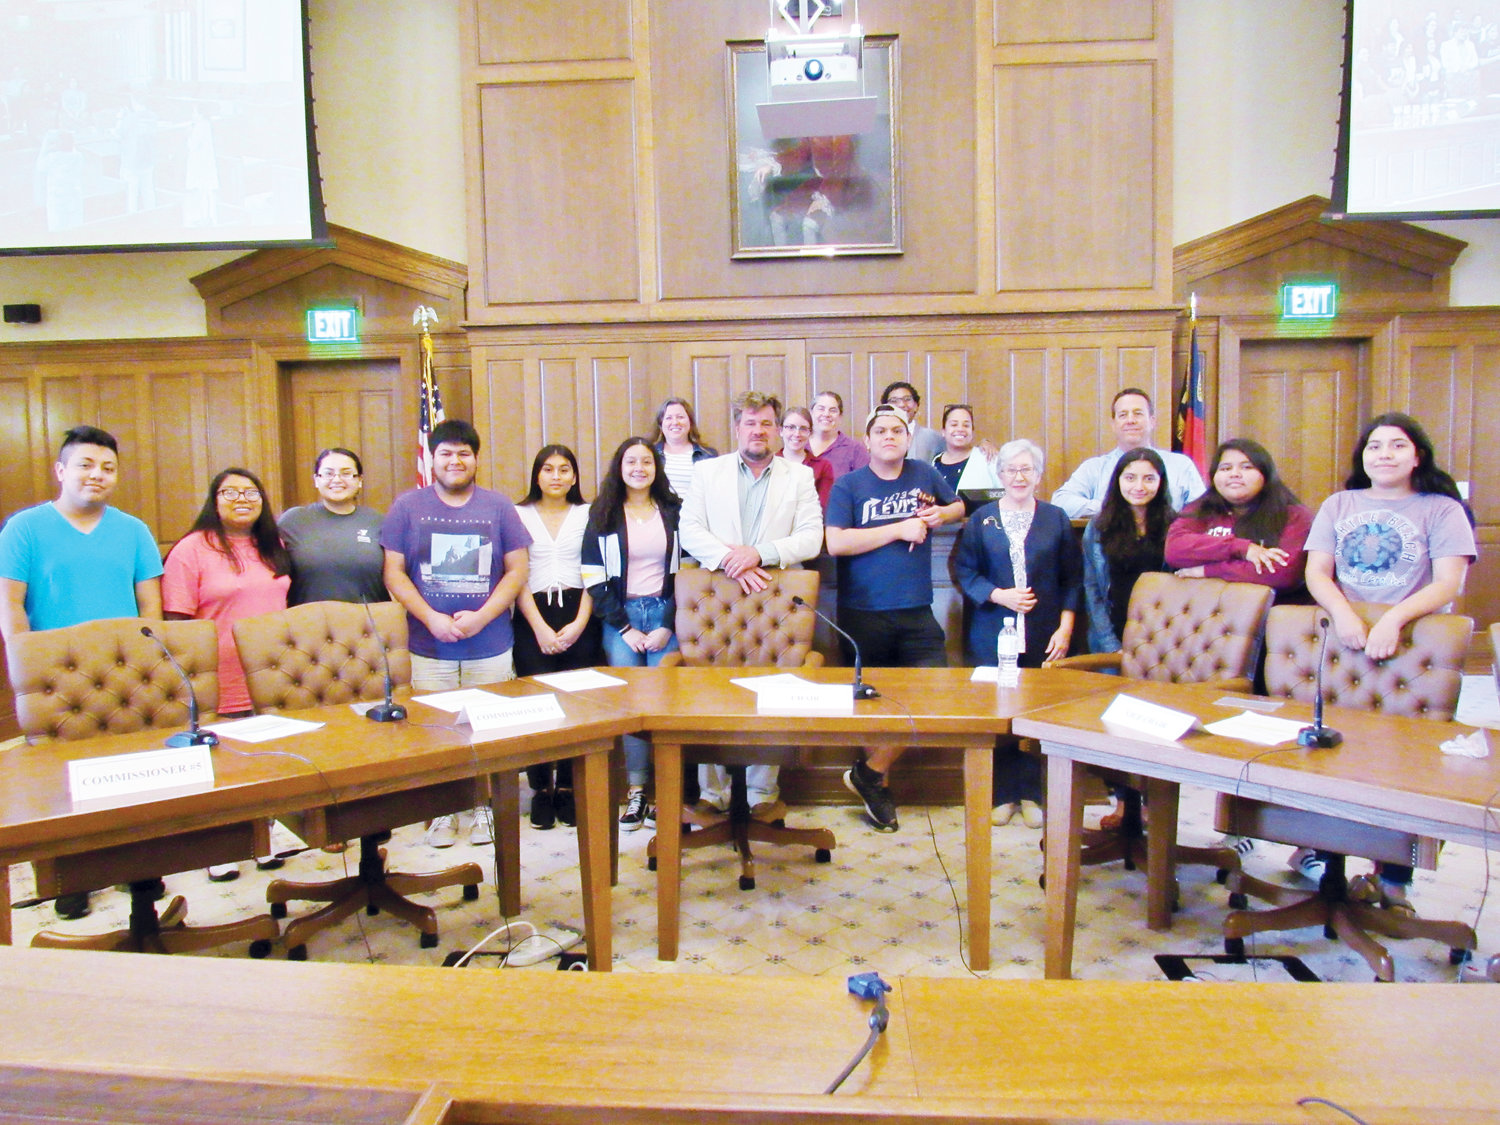 Members of the Orgullo Latinx Pride youth group with The Hispanic Liaison in Siler City participated July 10 in a mock meeting of the Chatham County Board of Commissioners with assistance from county staff and Commissioners Jim Crawford and Diana Hales.